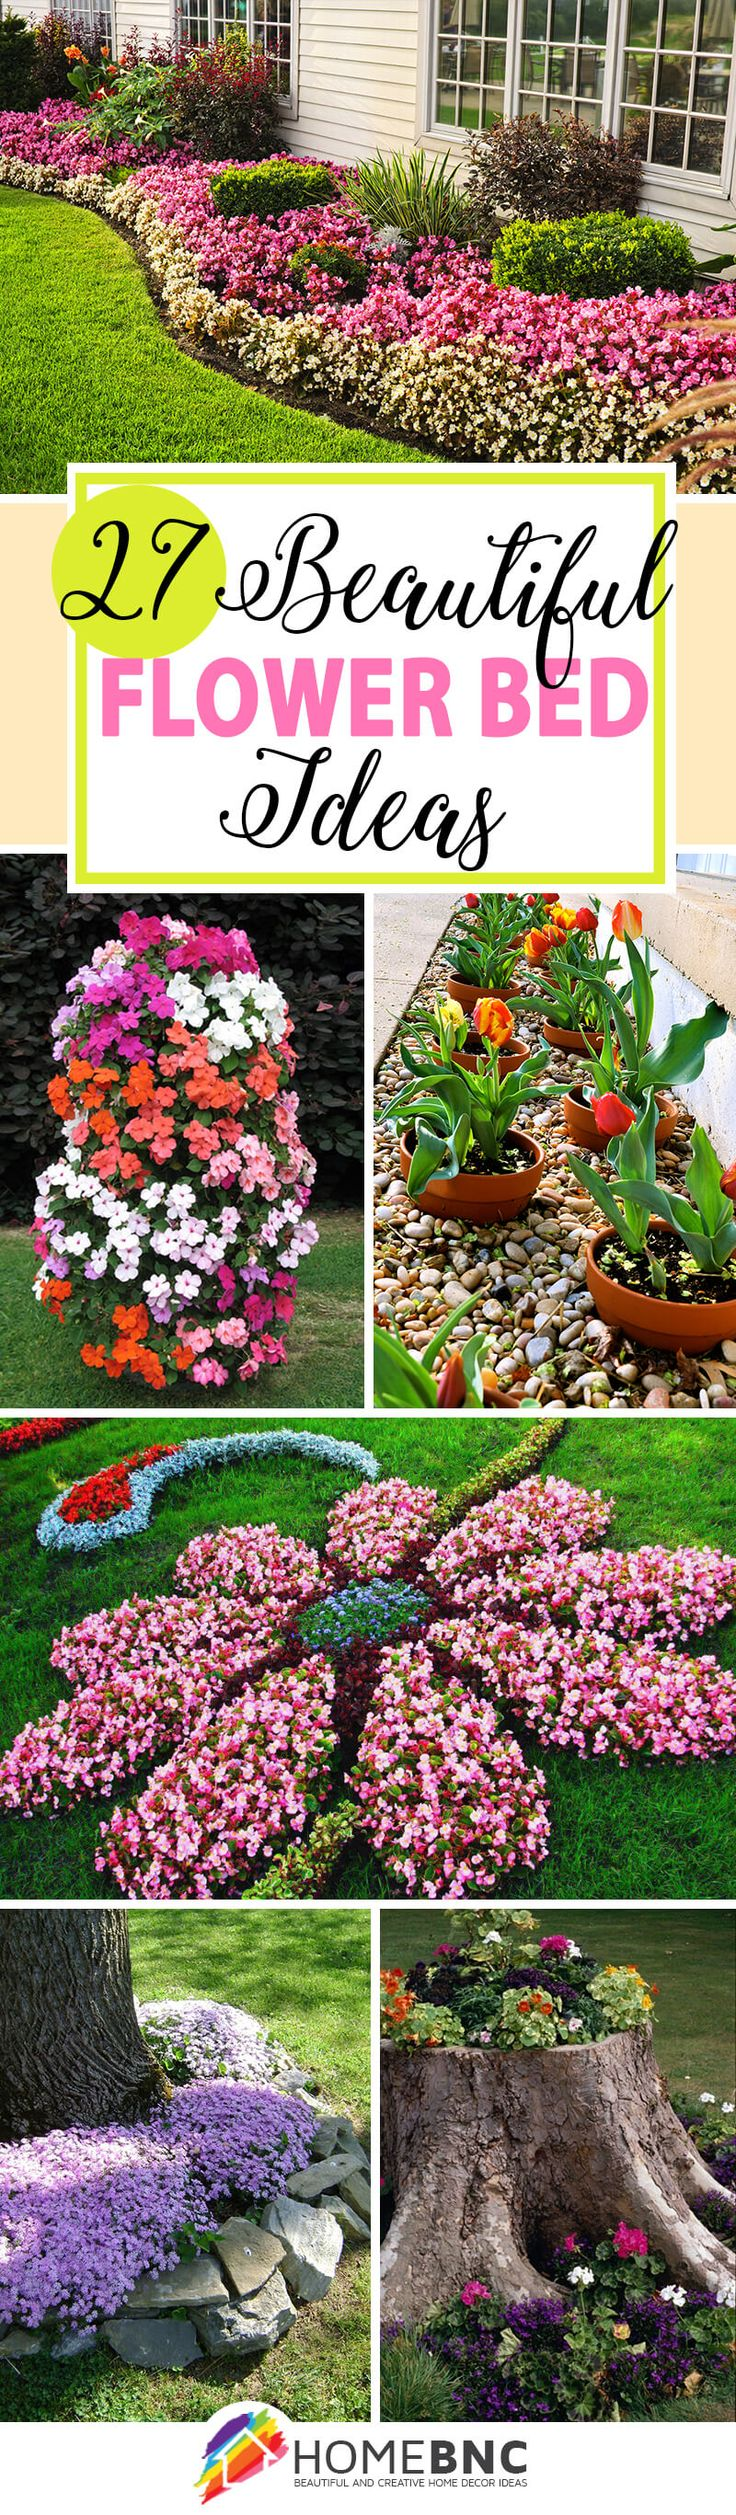 Flower garden design ideas - 27 Gorgeous And Creative Flower Bed Ideas To Try Flower Bed Designsflower Gardeninggardening